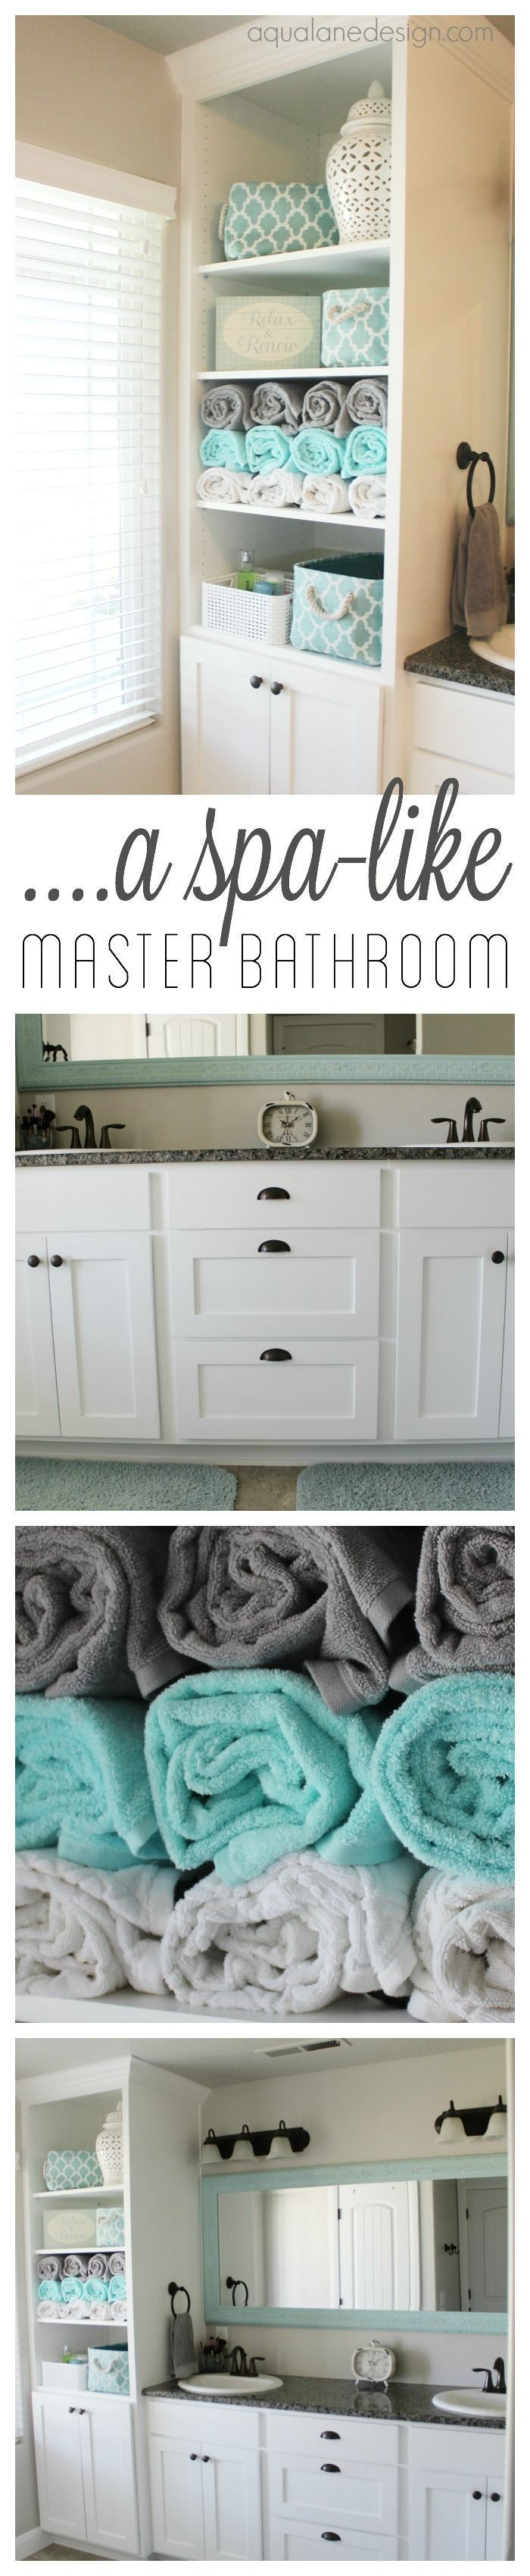 A spa like master bathroom | open linen closet | aqua and gray bathroom